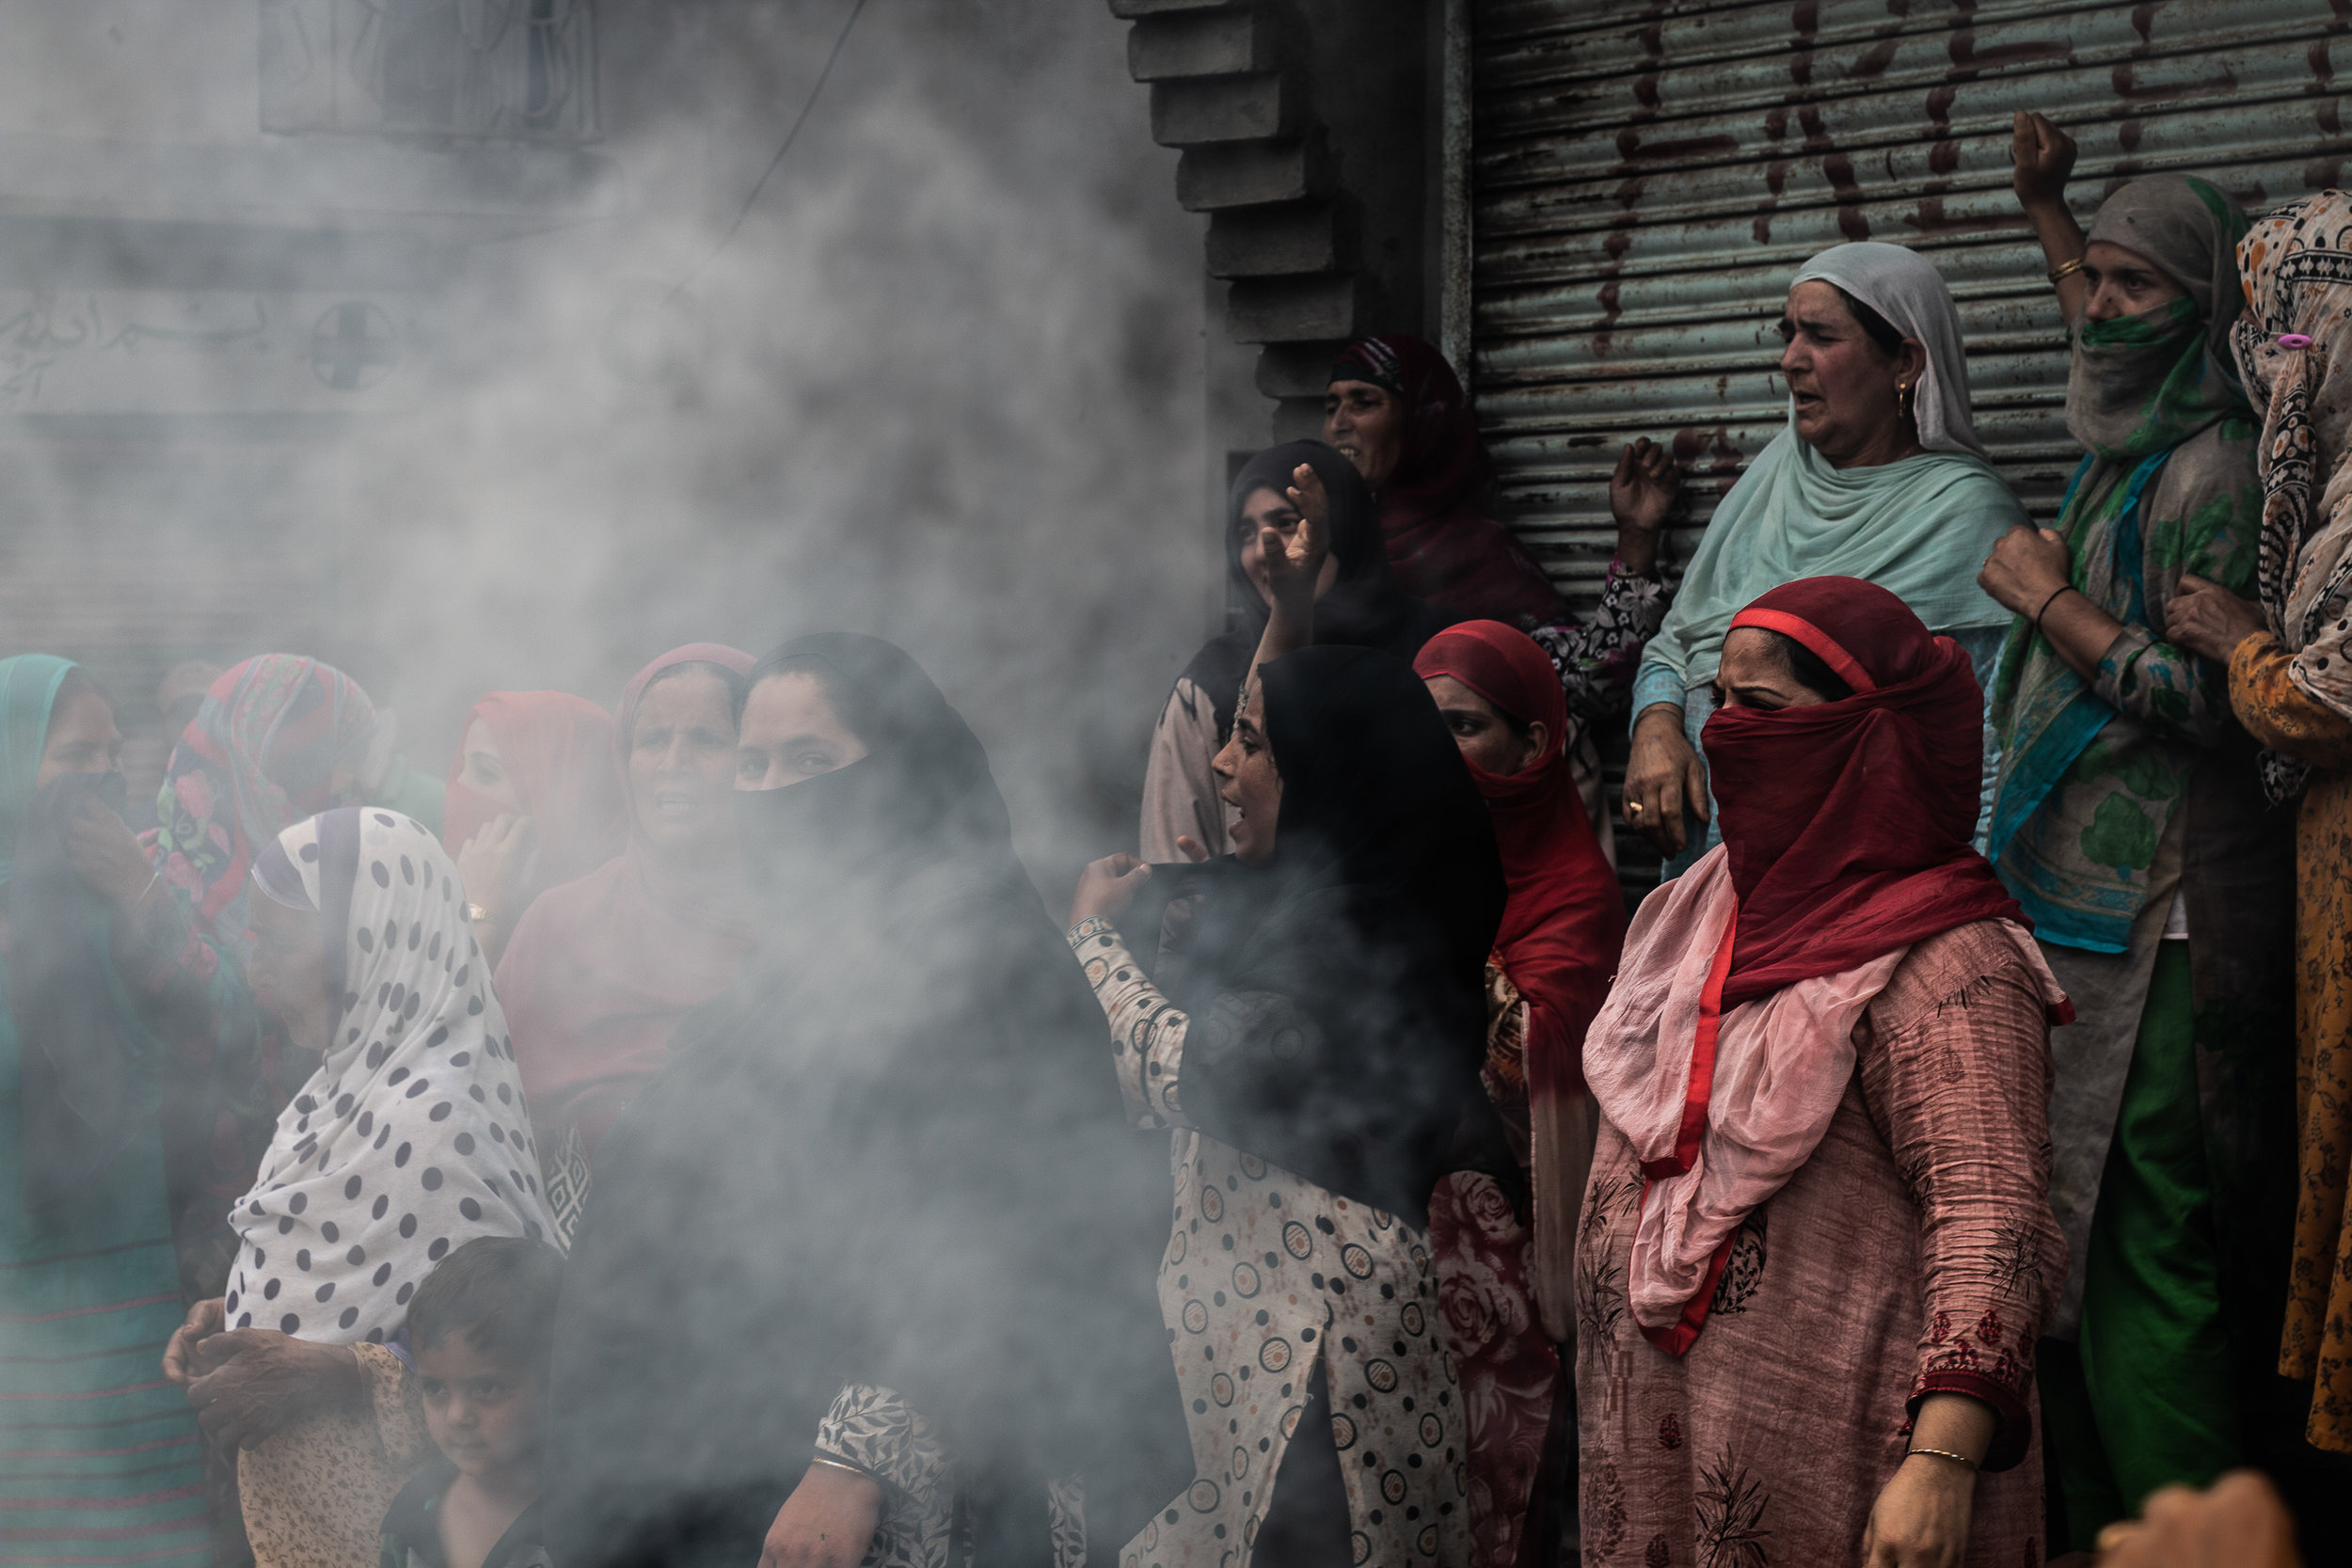 Though the forces used tear gas and chili grenades, women, alongside men, stood their ground. Many struggled to breathe normally after coming in contact with the shells. Photo by Avinash Giri.